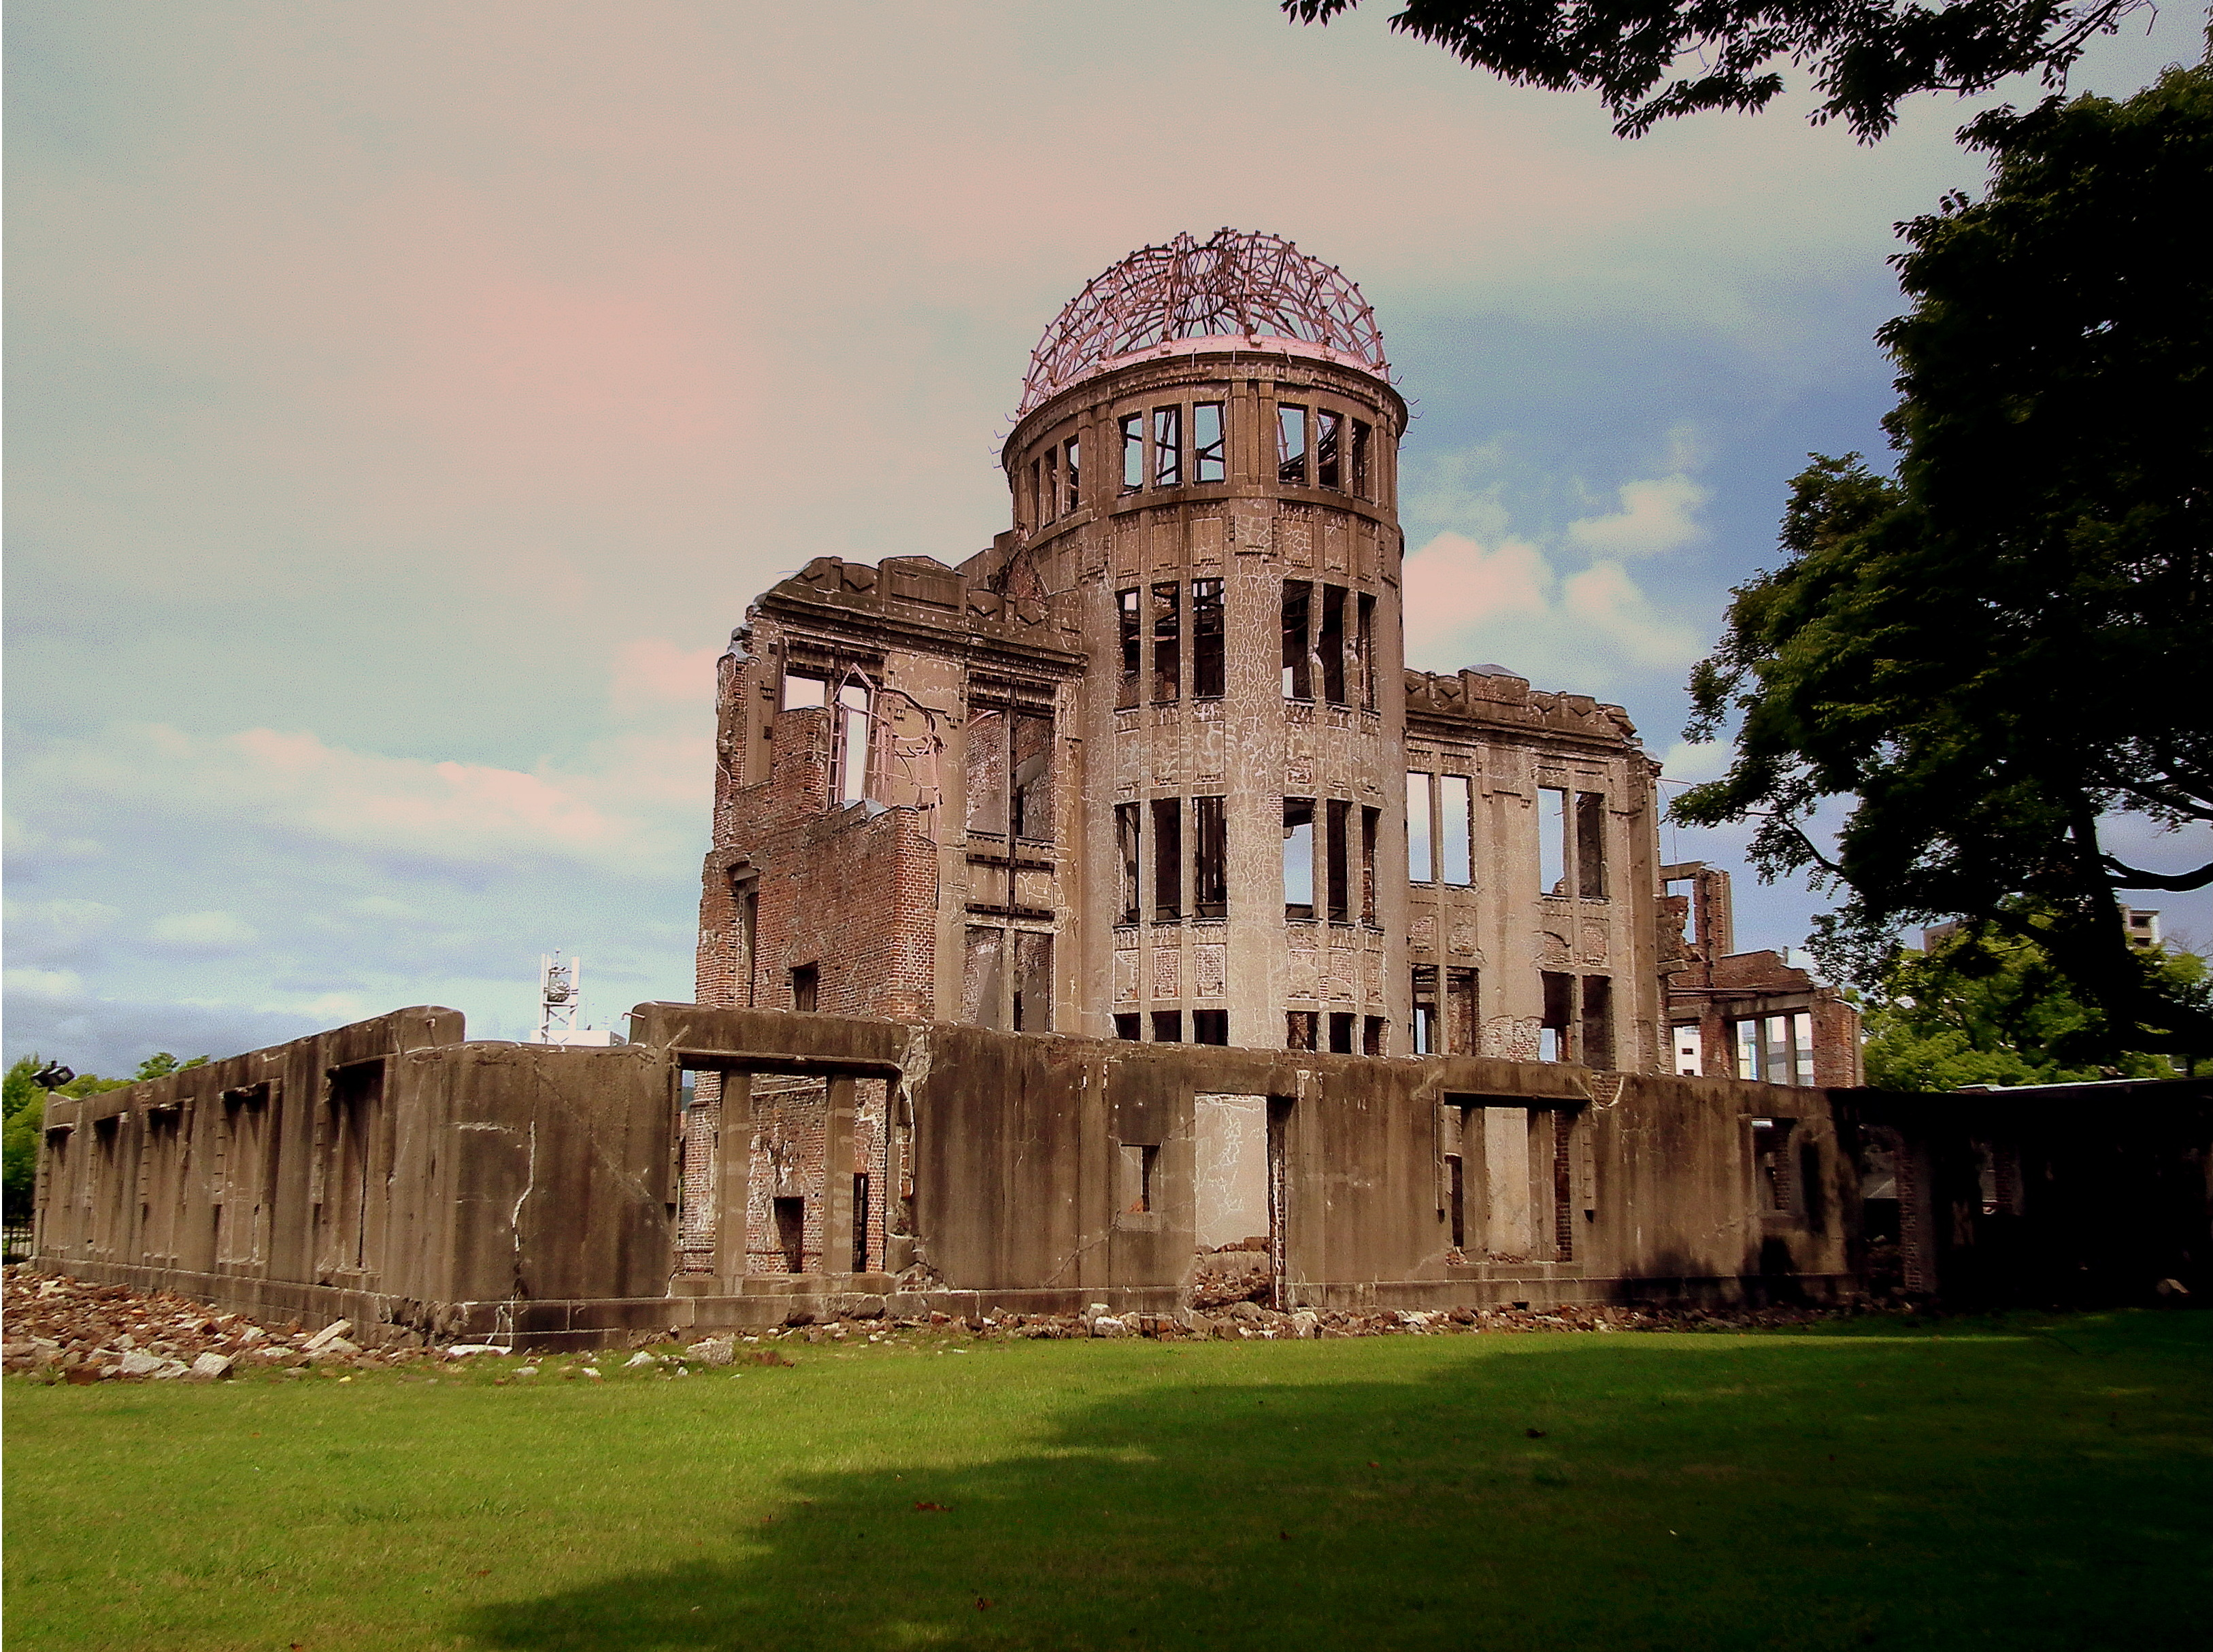 File:ATOMIC BOMB DOME HIROSHIMA JAPAN JUNE 2012 (7408699362).jpg - Wikimedia ...